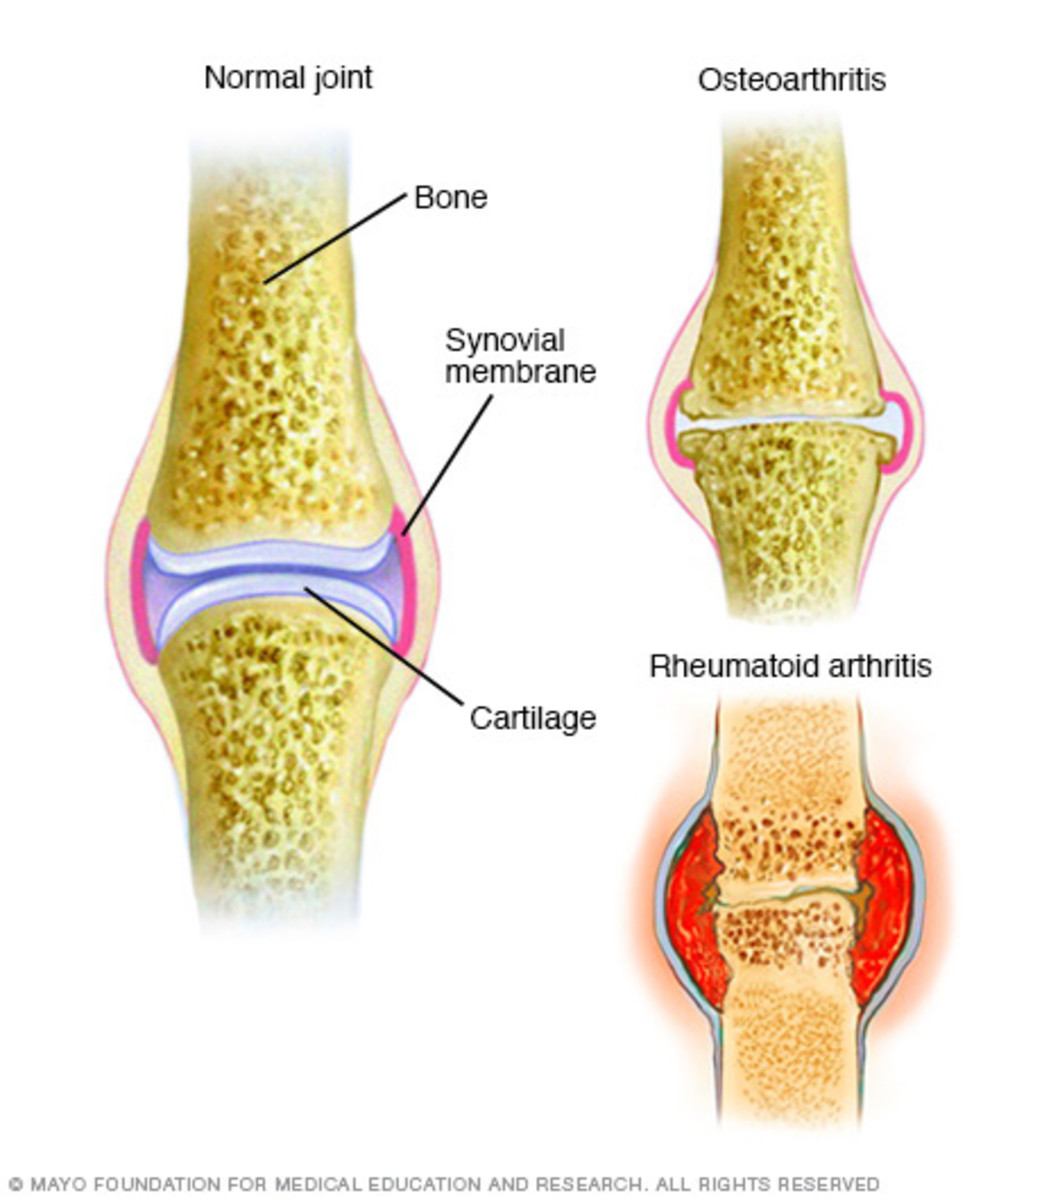 Osteoarthritis, the most common form of arthritis, involves the wearing away of the cartilage that caps the bones in your joints. With rheumatoid arthritis, the synovial membrane that protects and lubricates joints becomes inflamed, causing pain and